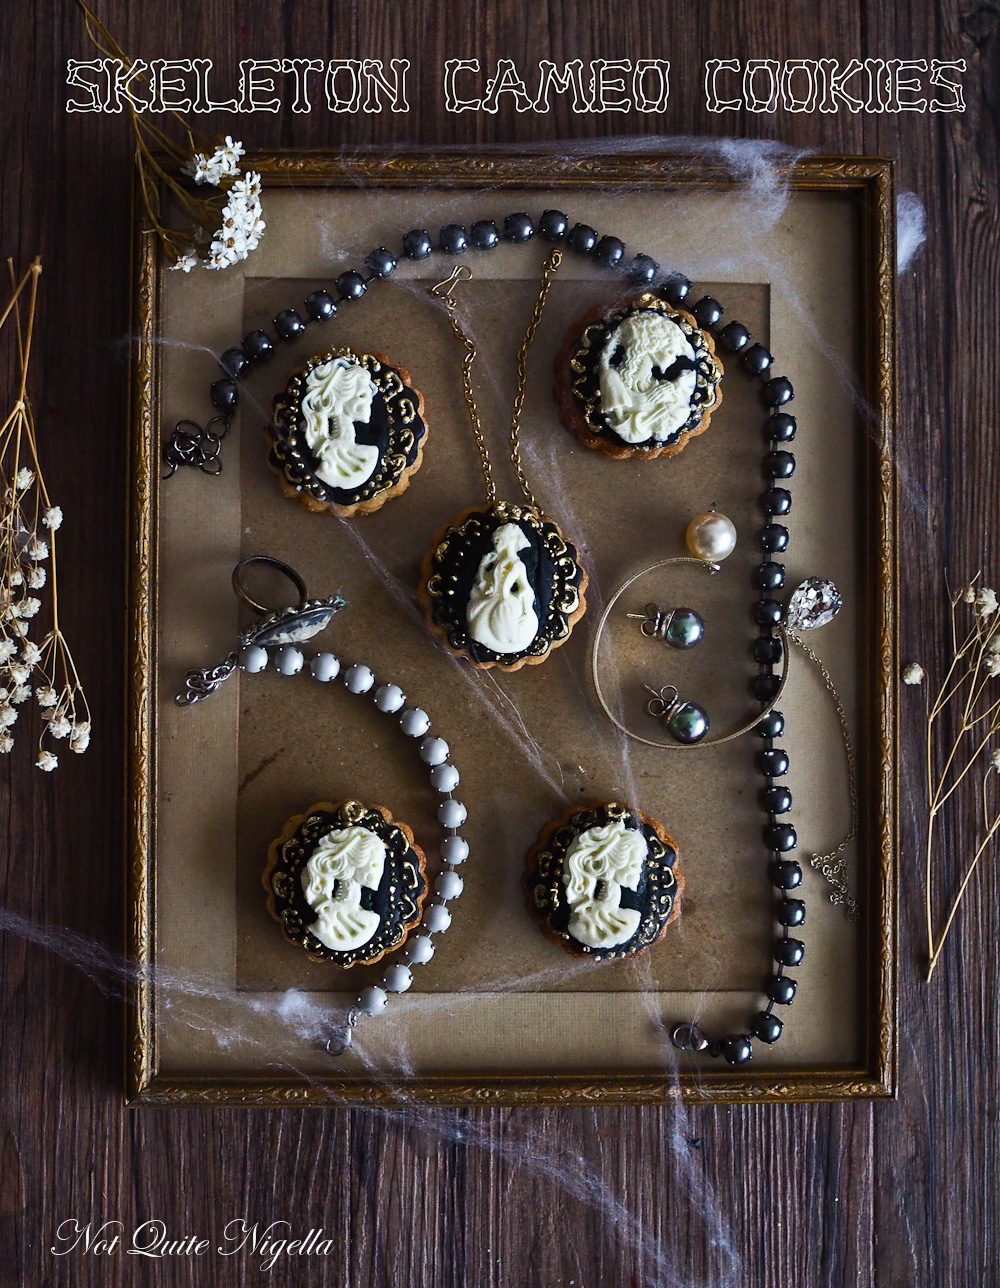 Cameo Skeleton Cookies